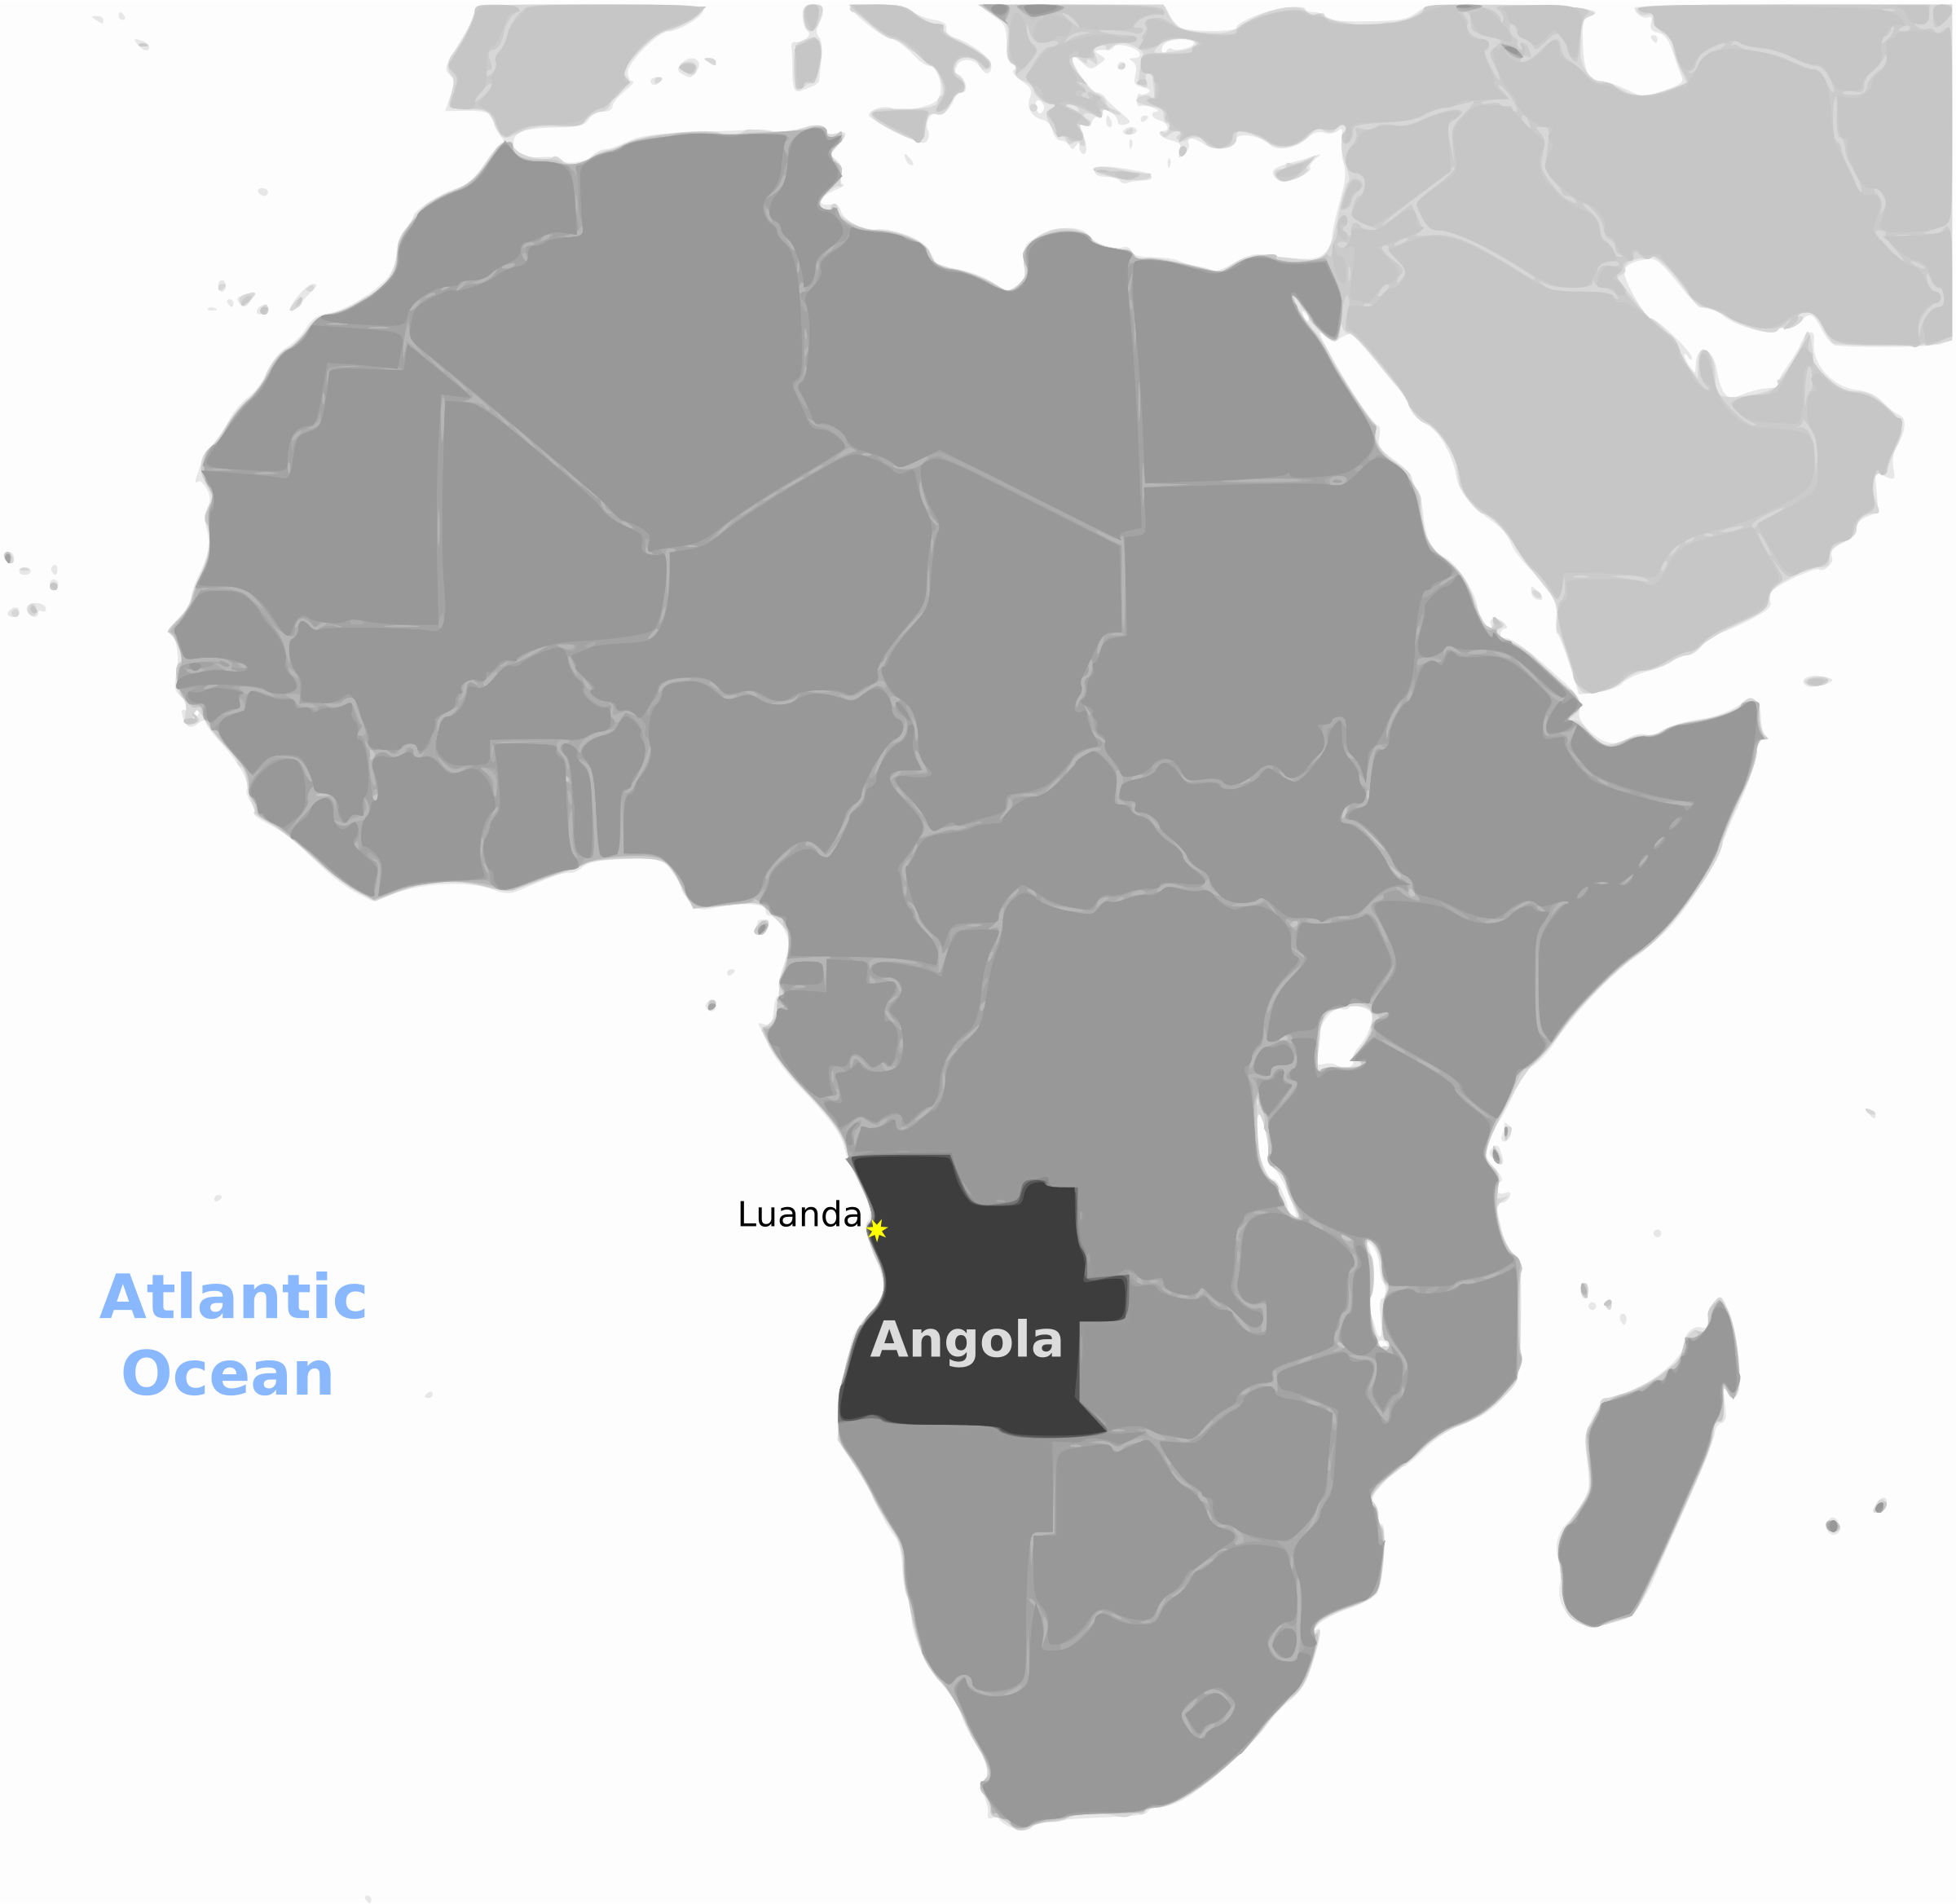 Angola location labeled by wpclipart